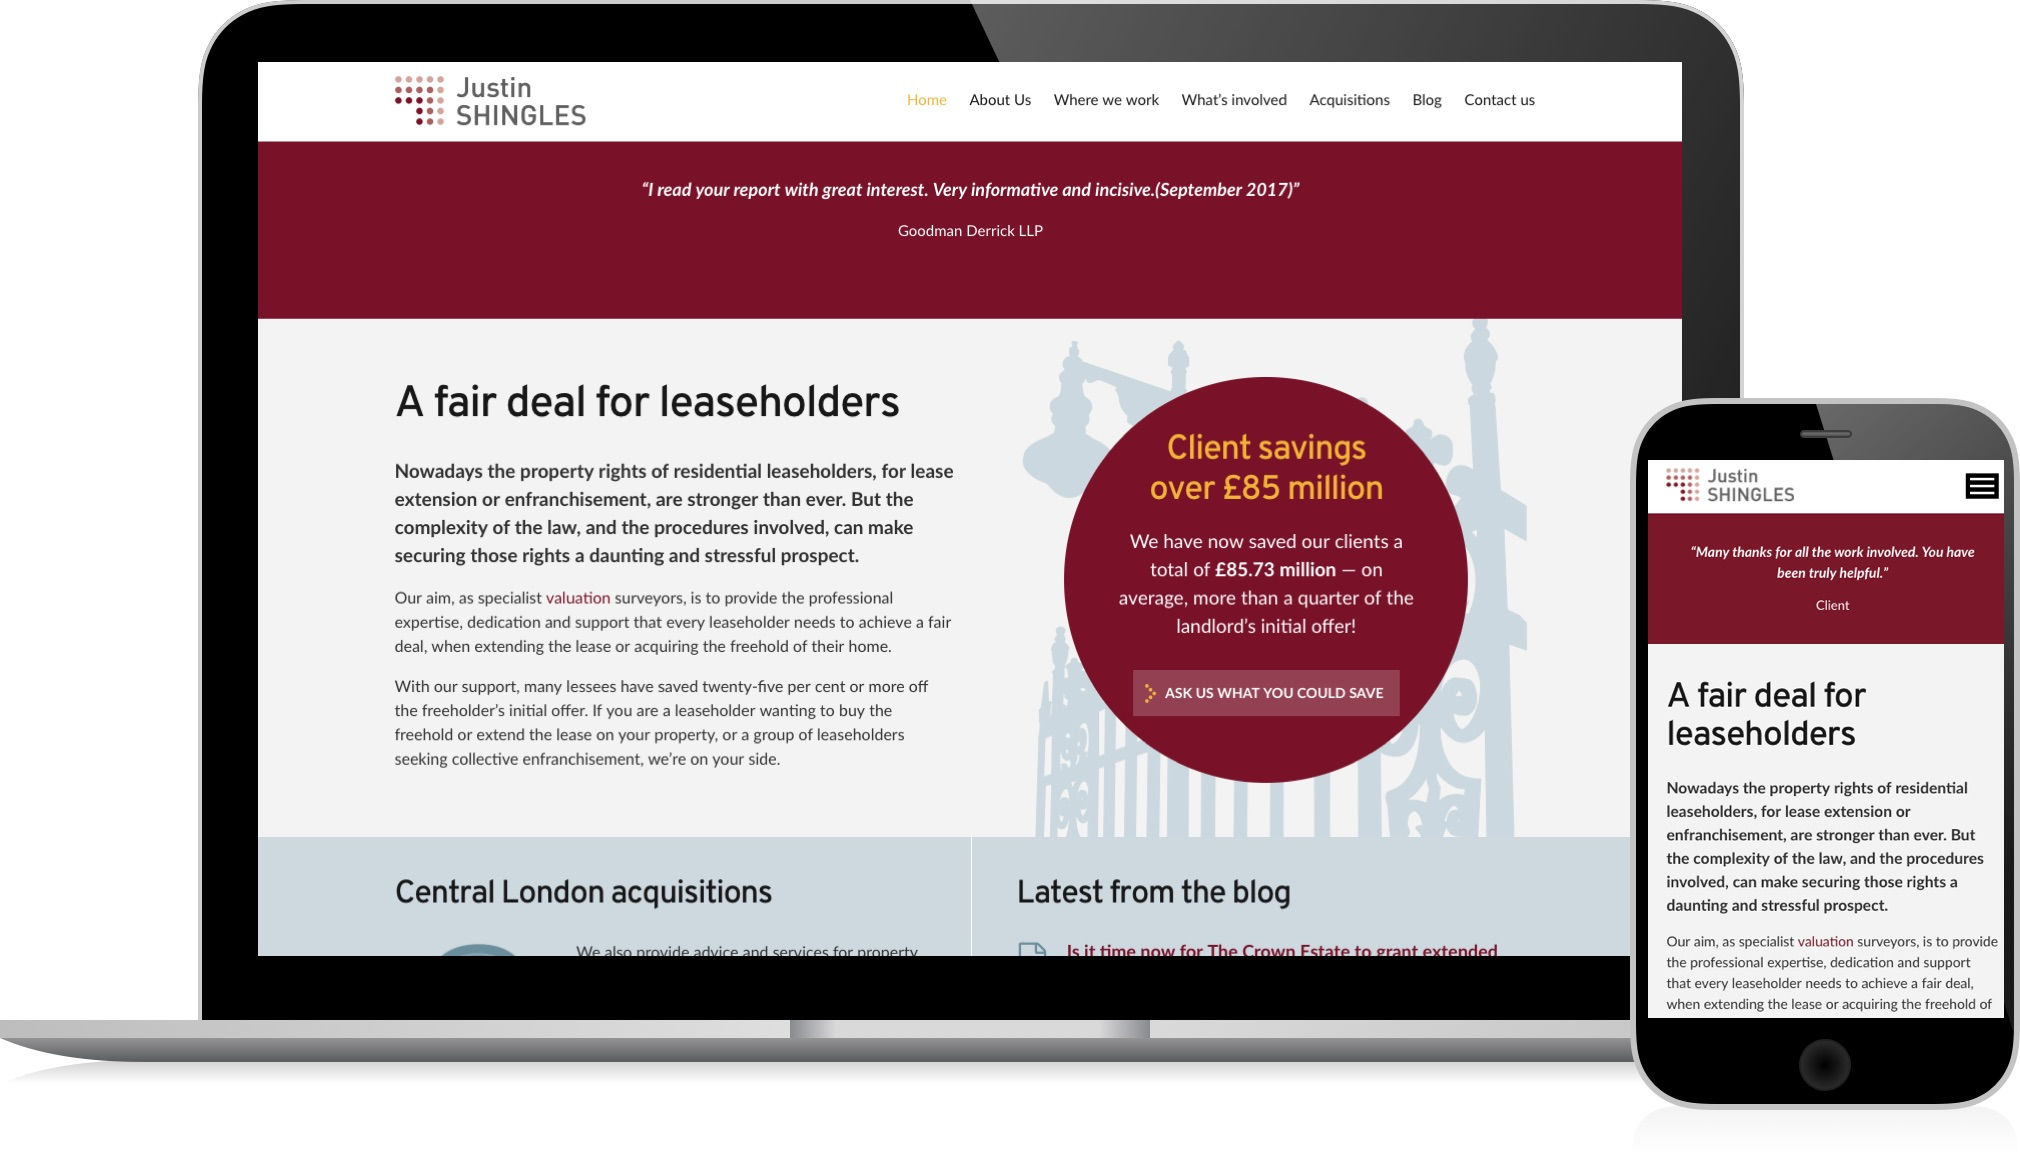 Justin Shingles Ltd. - website design and development by HeavyGuru, London